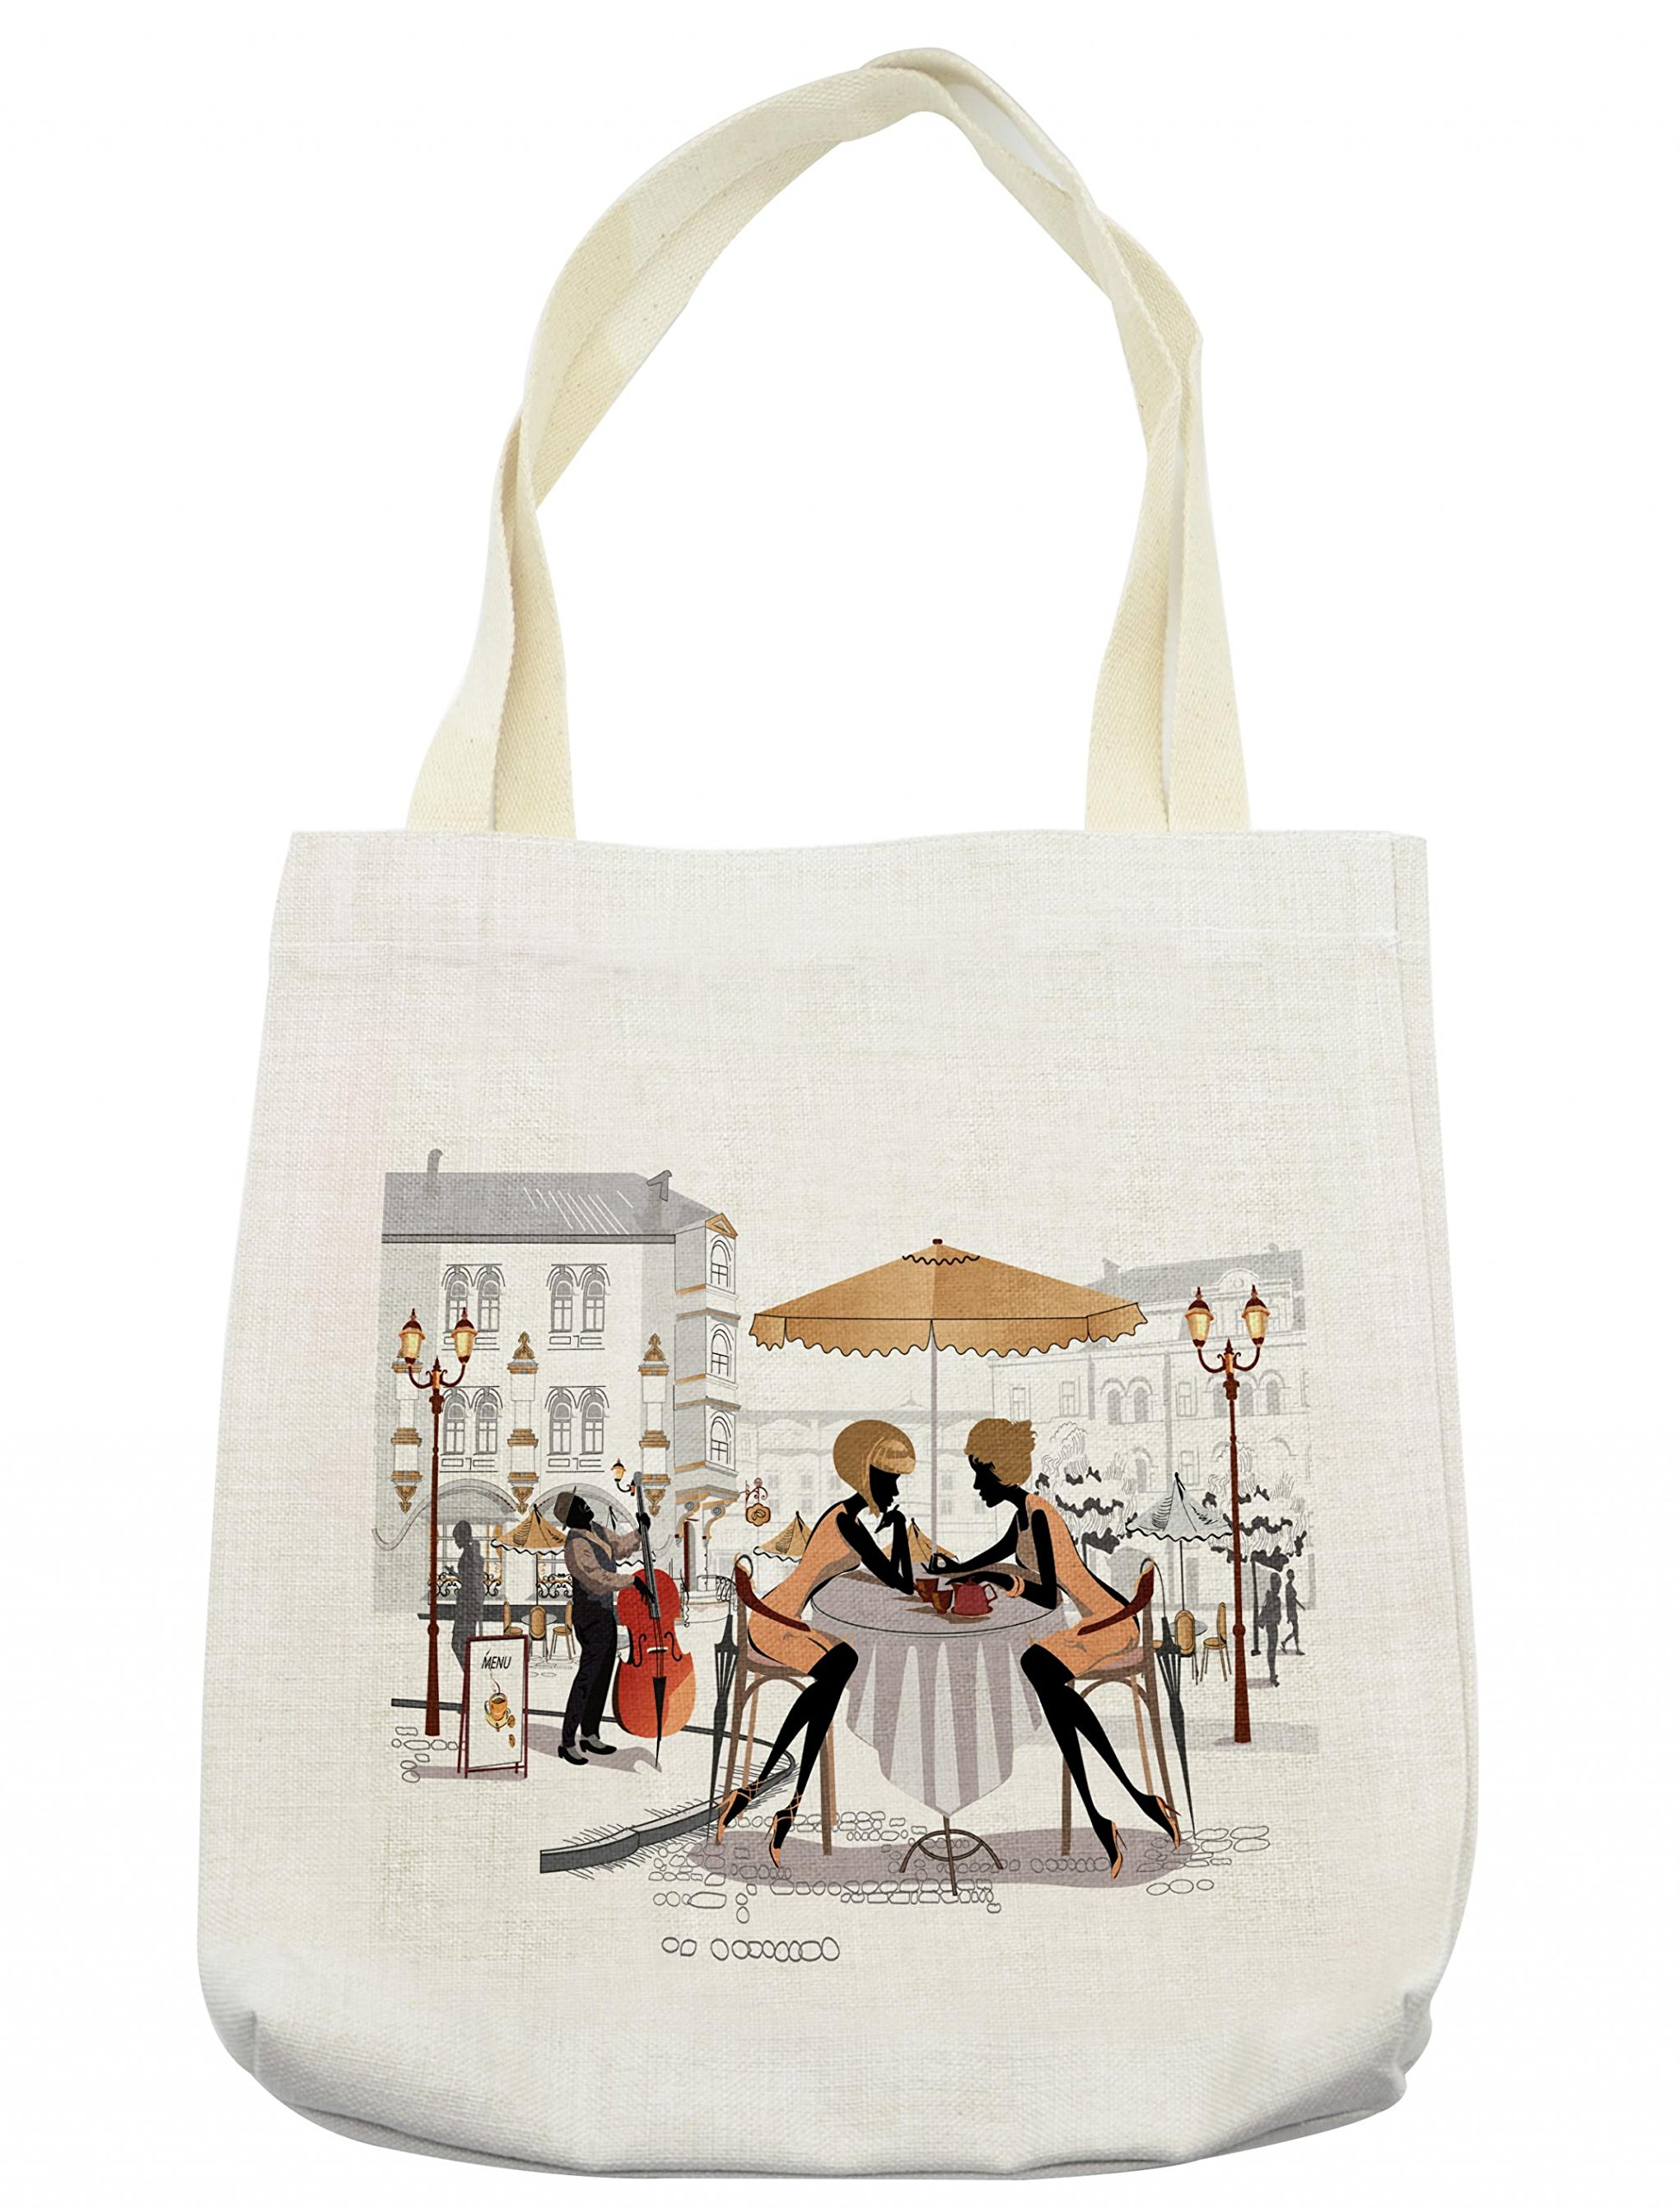 4d186e81f13a Lunarable Girls Tote Bag, Two Ladies in a Paris Cafe in Old Town with  Street Musician Urban Theme, Cloth Linen Reusable Bag for Shopping  Groceries ...